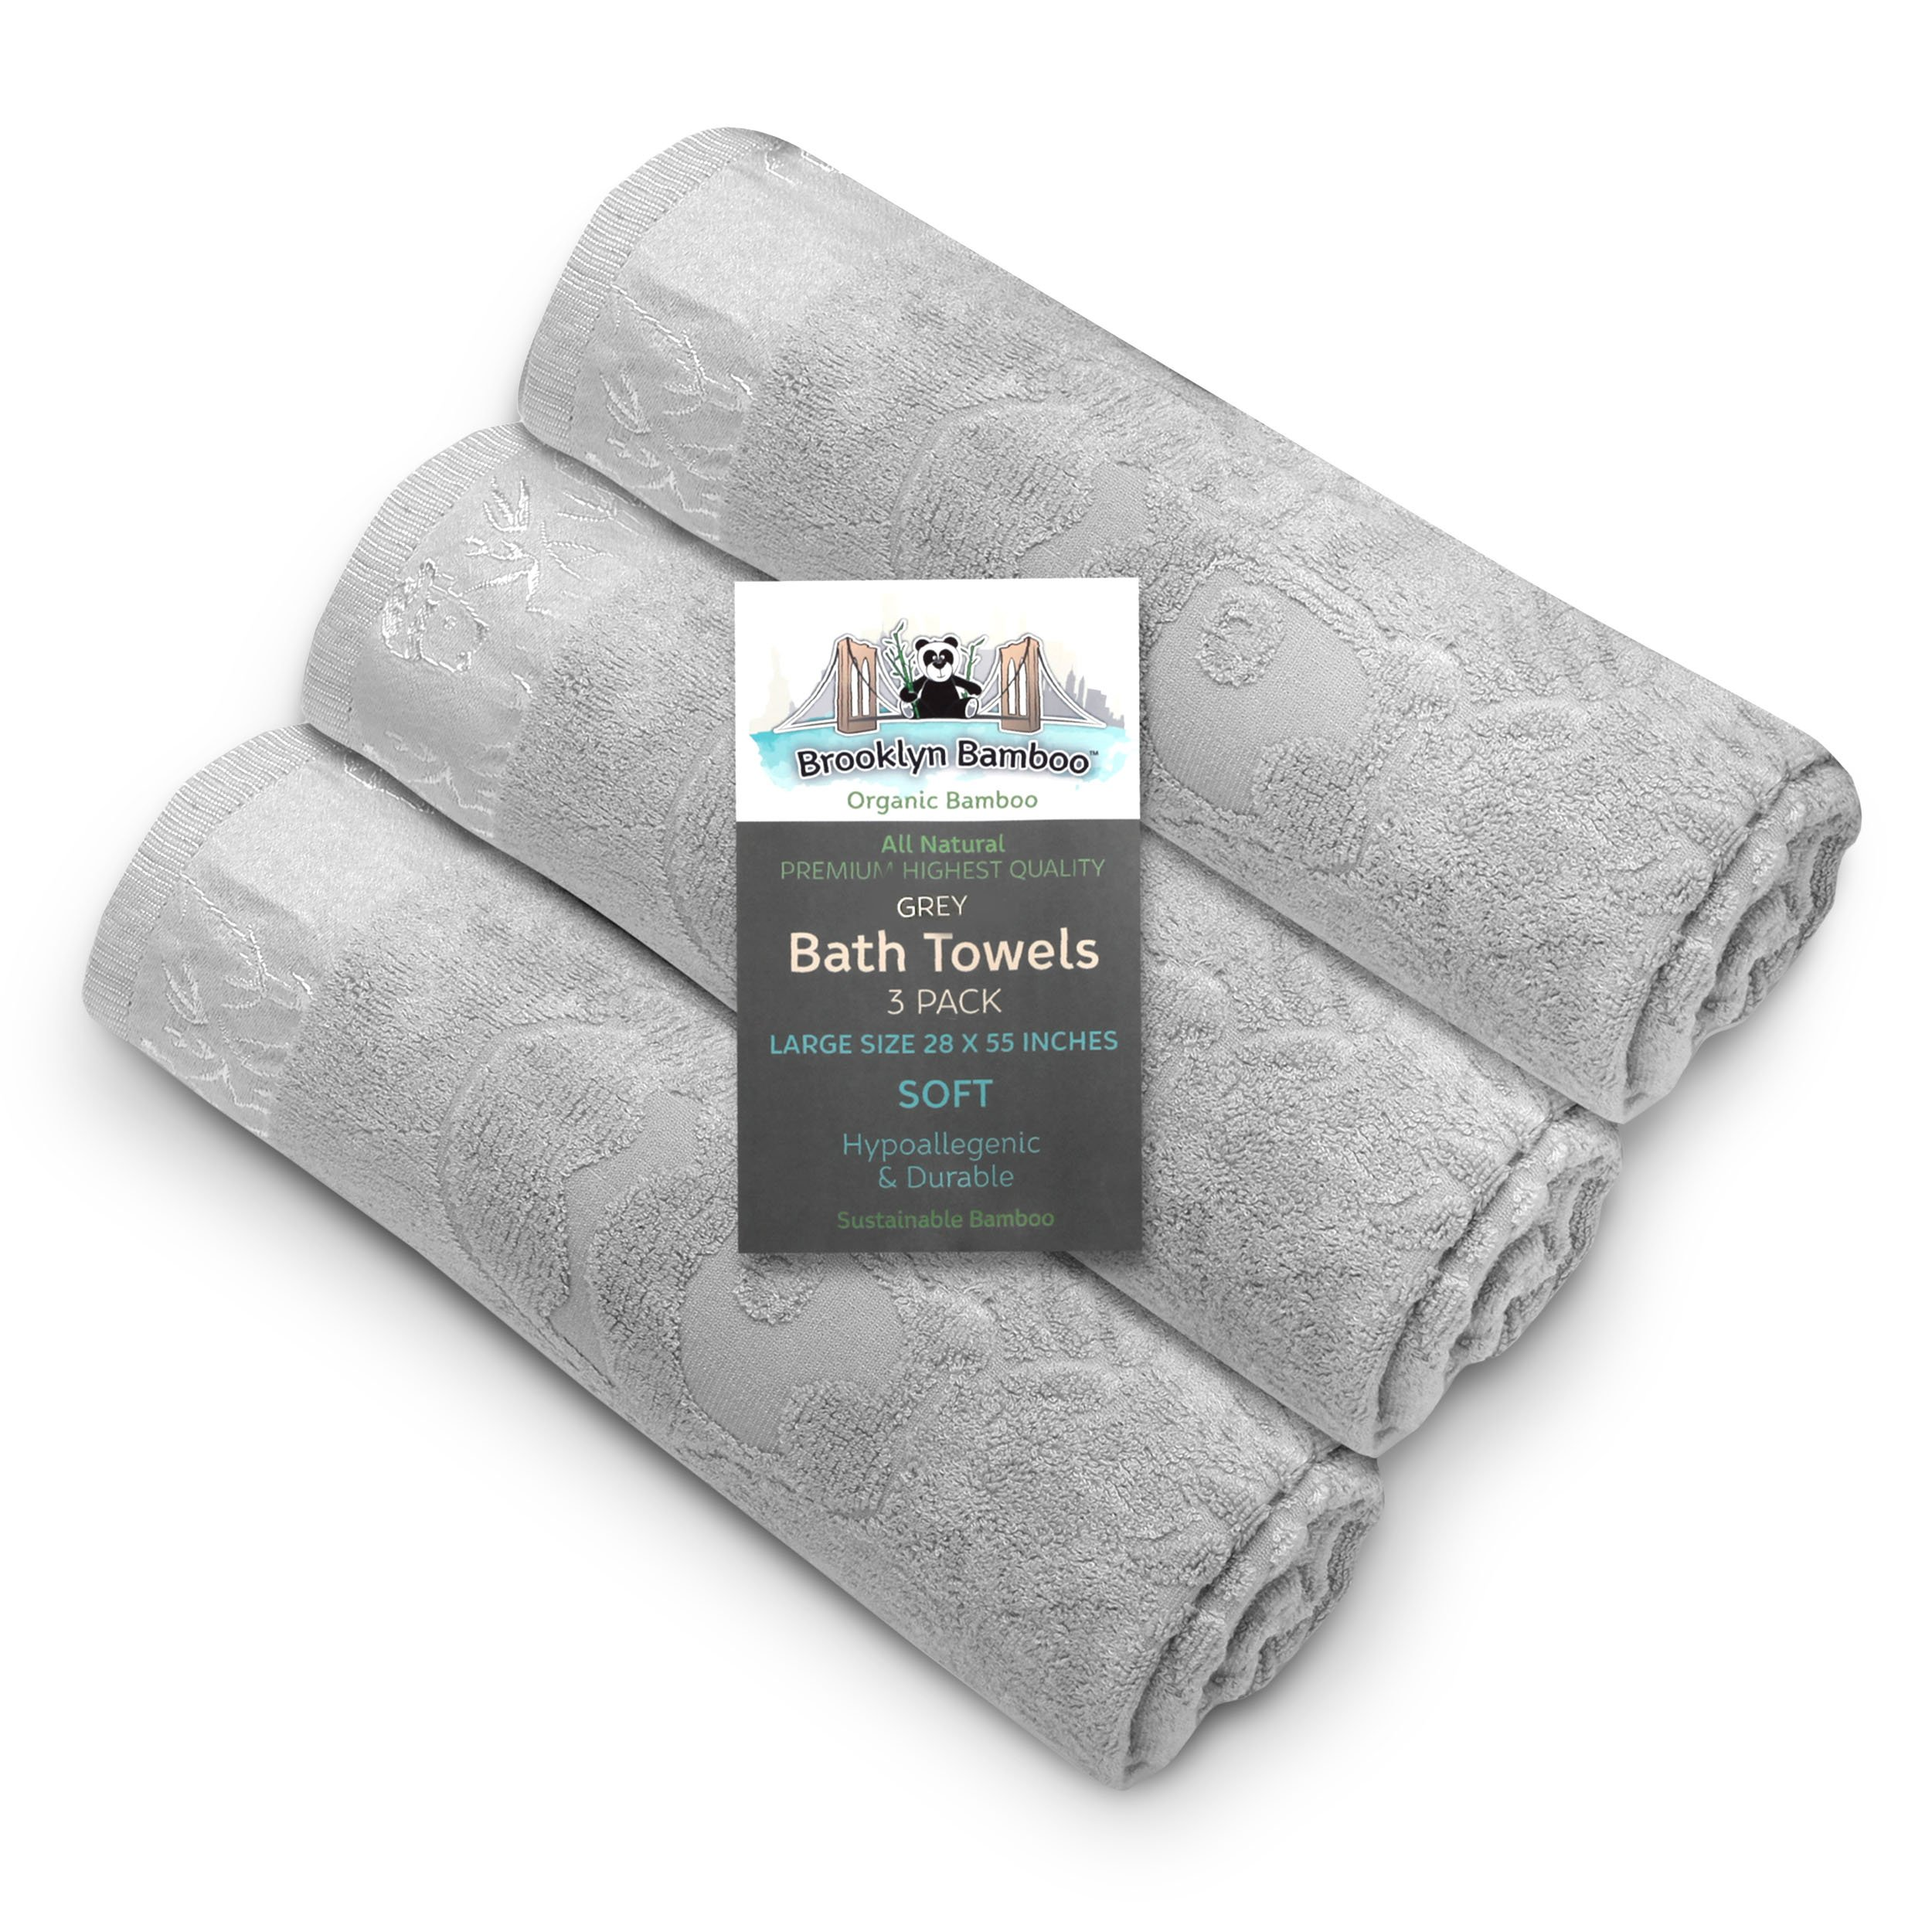 Brooklyn Bamboo Bath Towels, Beautiful Unique 3 Pack of Soft Absorbent Antifungal Hypoallergenic Towel, 27.6 X 55 inch, Grey